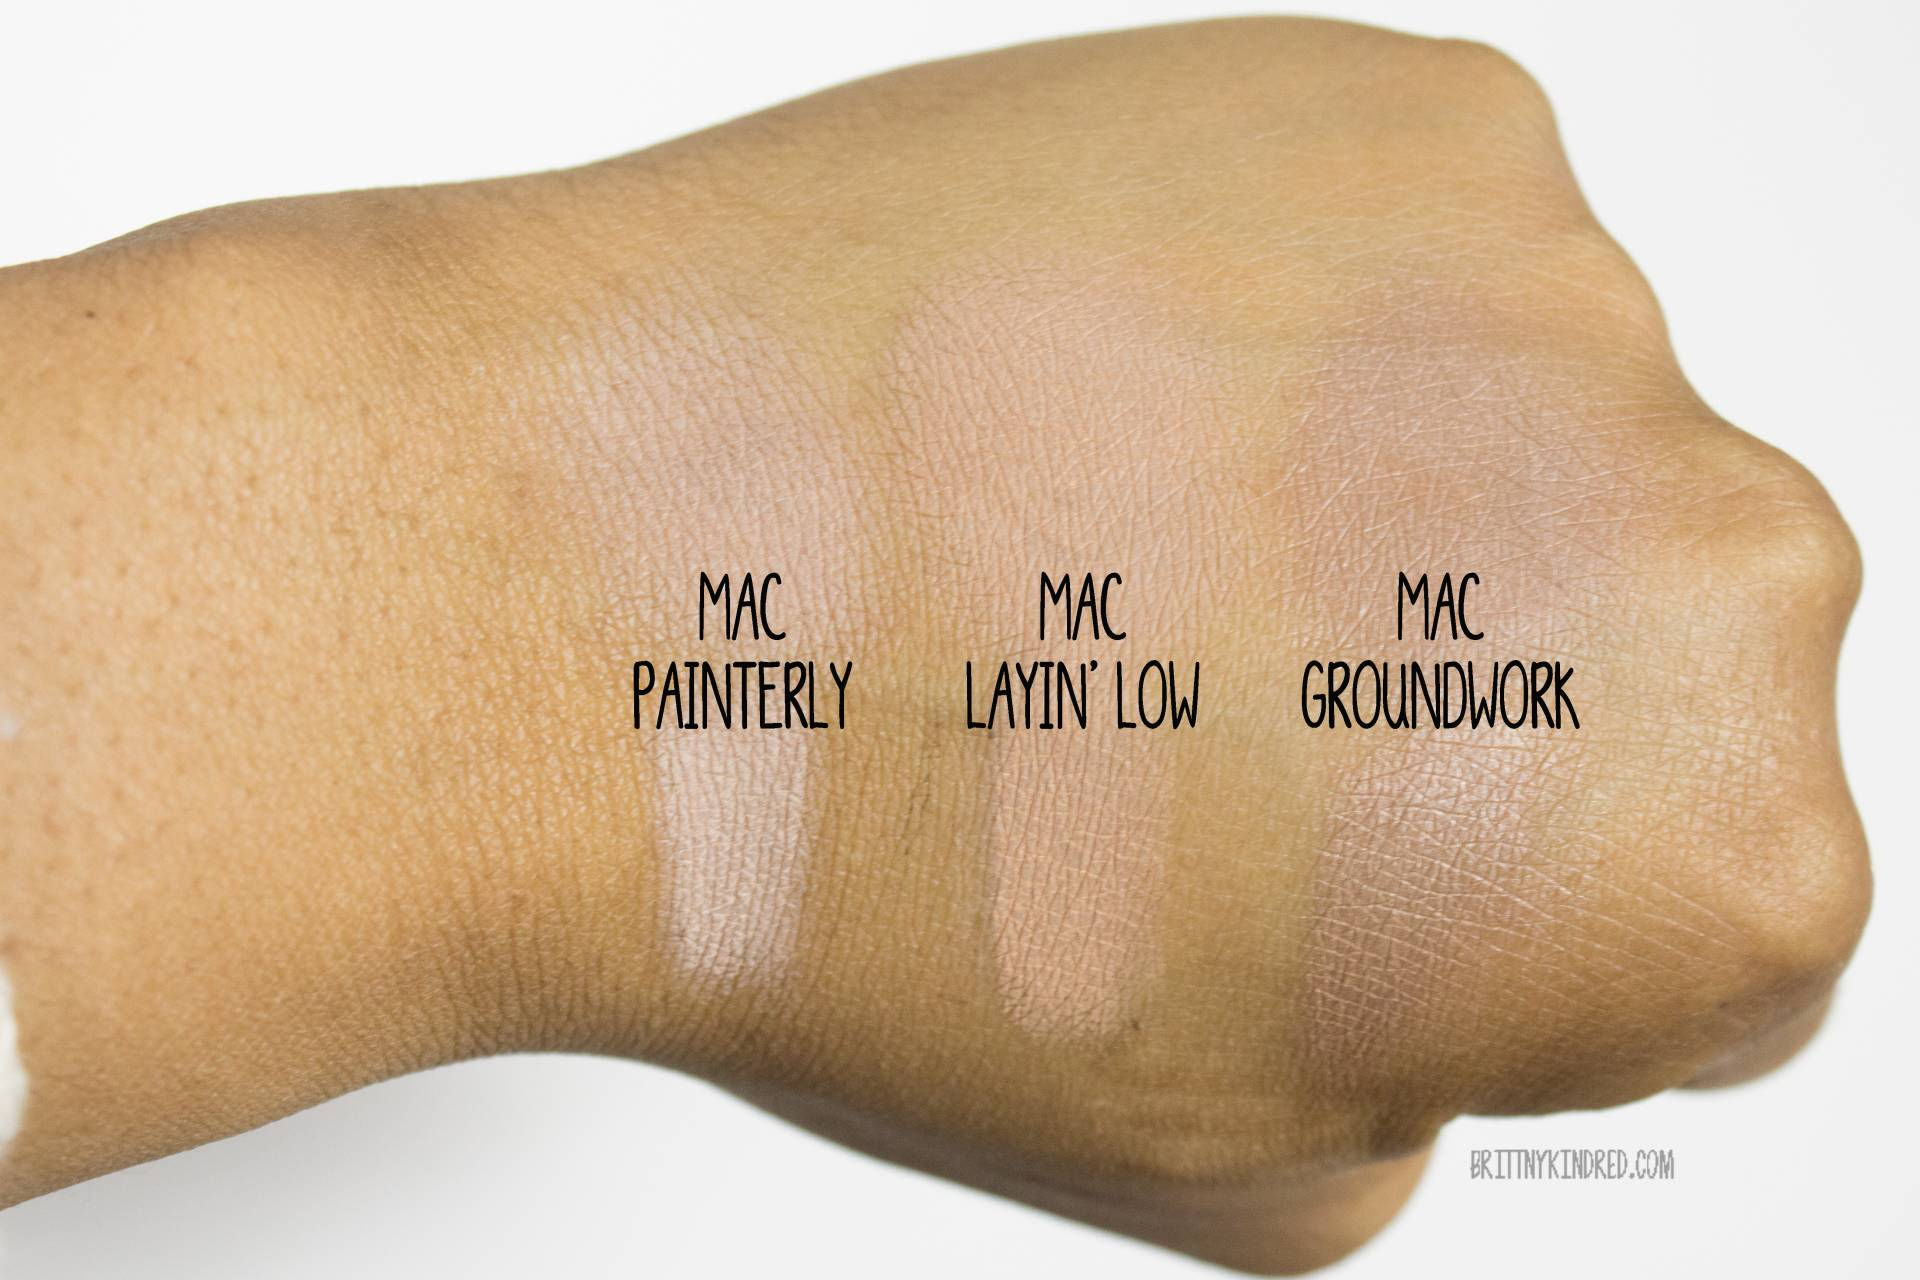 Mac Paint Pots swatches on dark skin